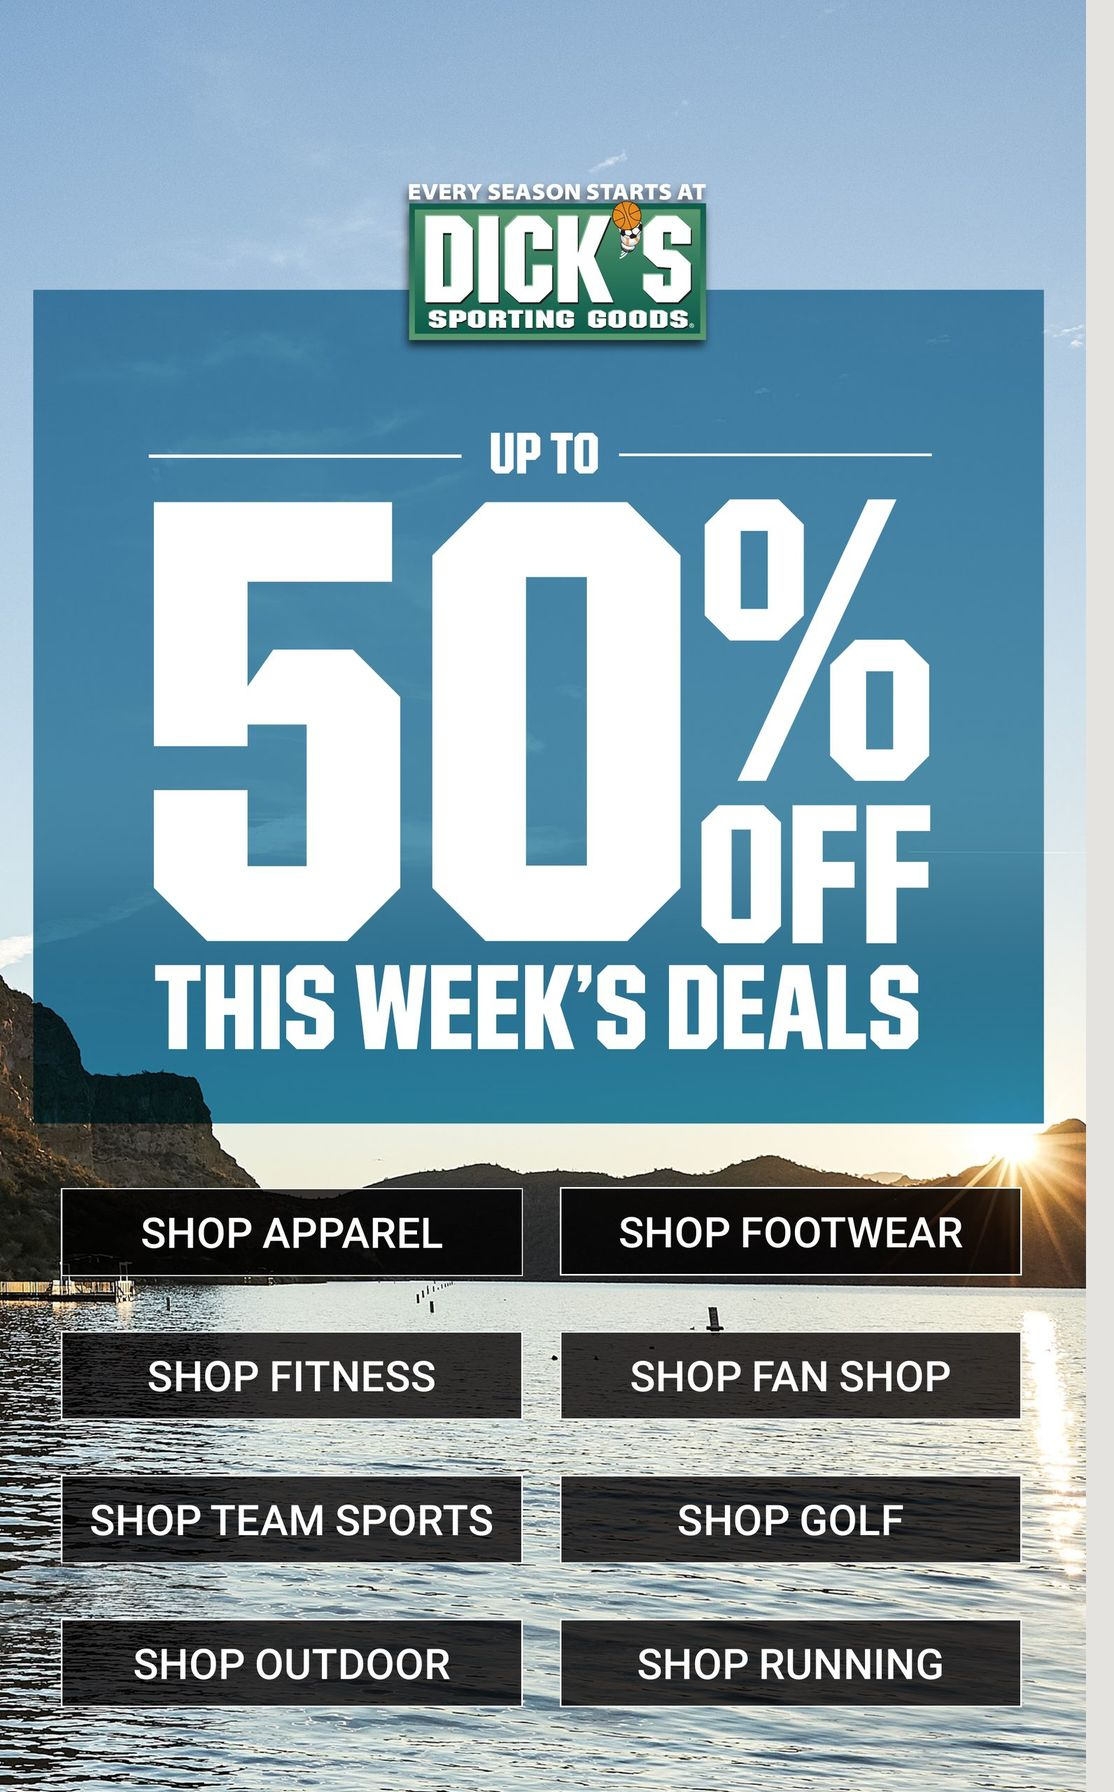 Dick's Weekly Ad June 6 - June 12, 2021. Up To 50% OFF!